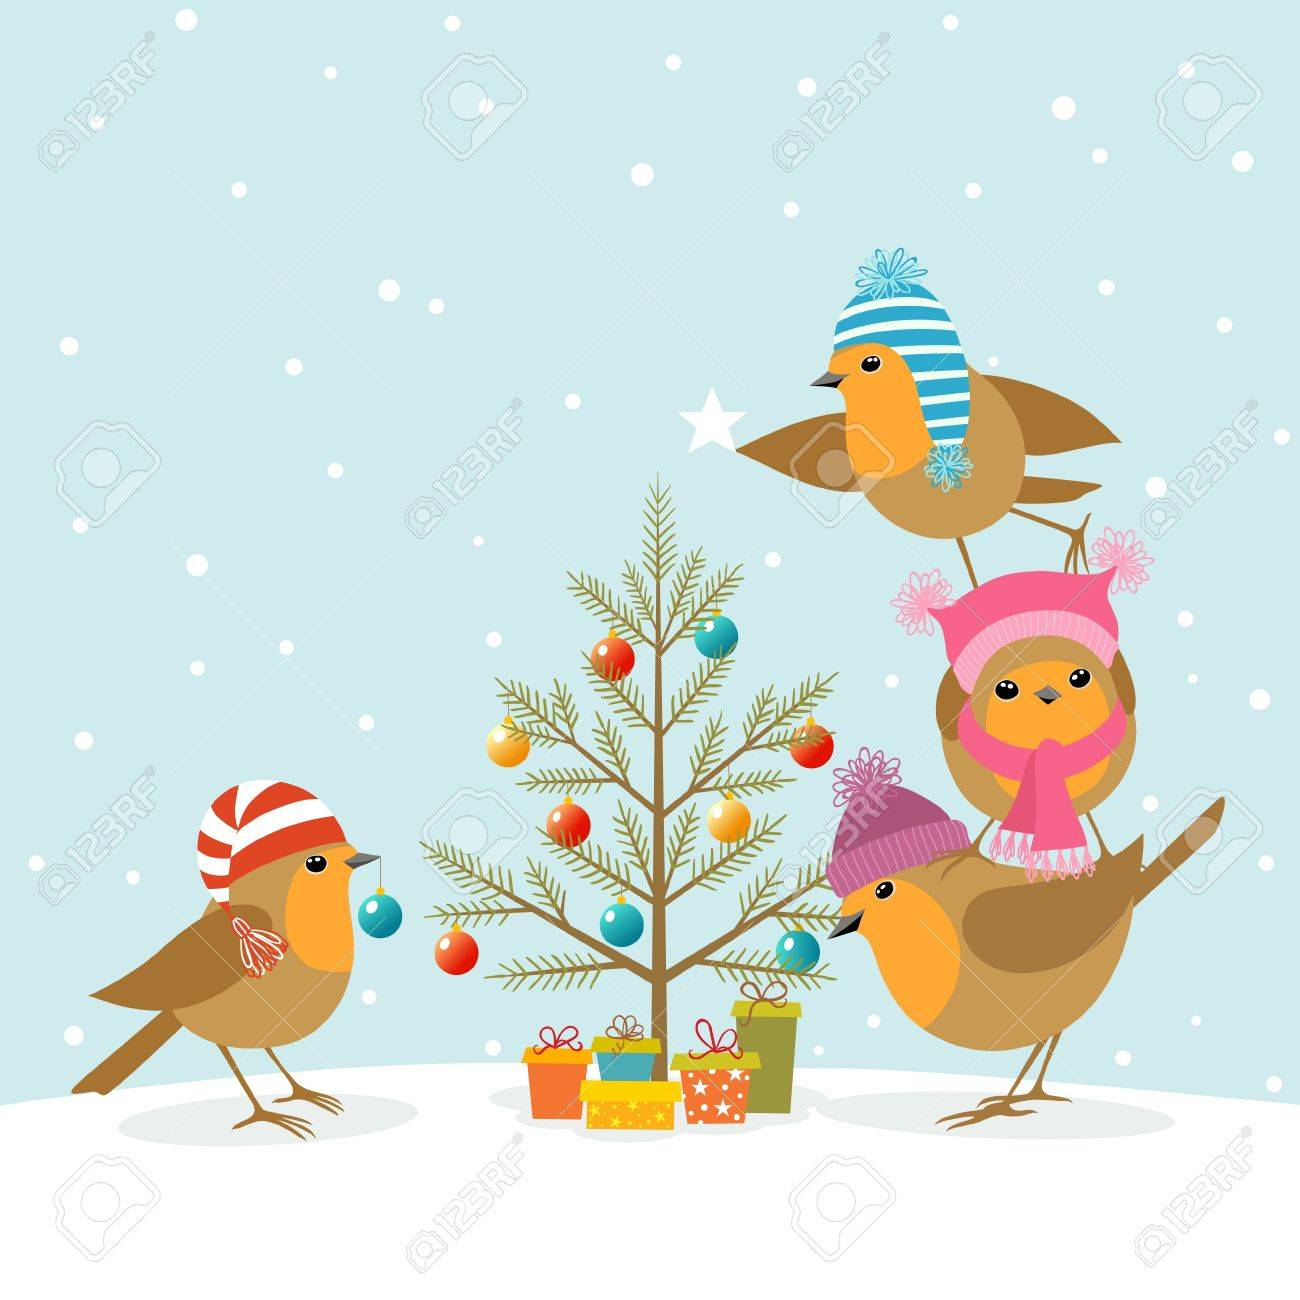 Funny Robins decorating a Christmas tree. Stock Vector - 16211147